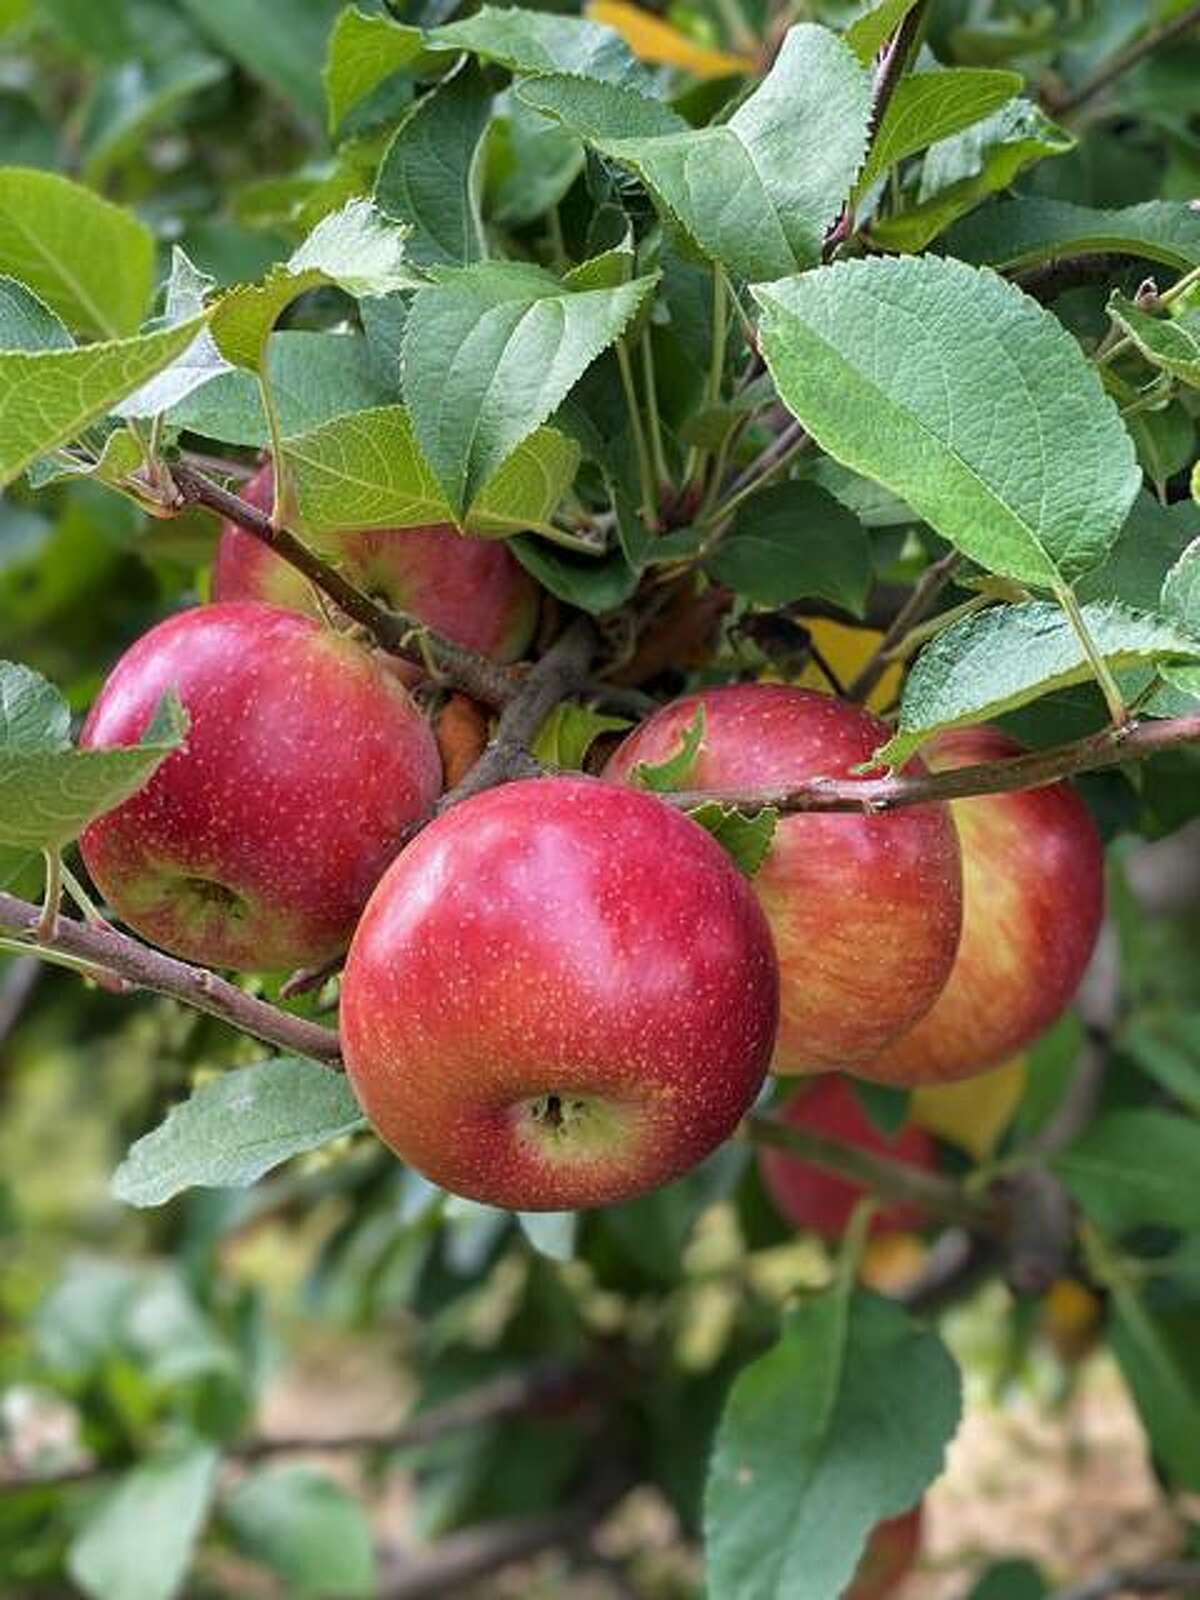 Empire Apples are available at Liberty Apple Orchard in Edwardsville.